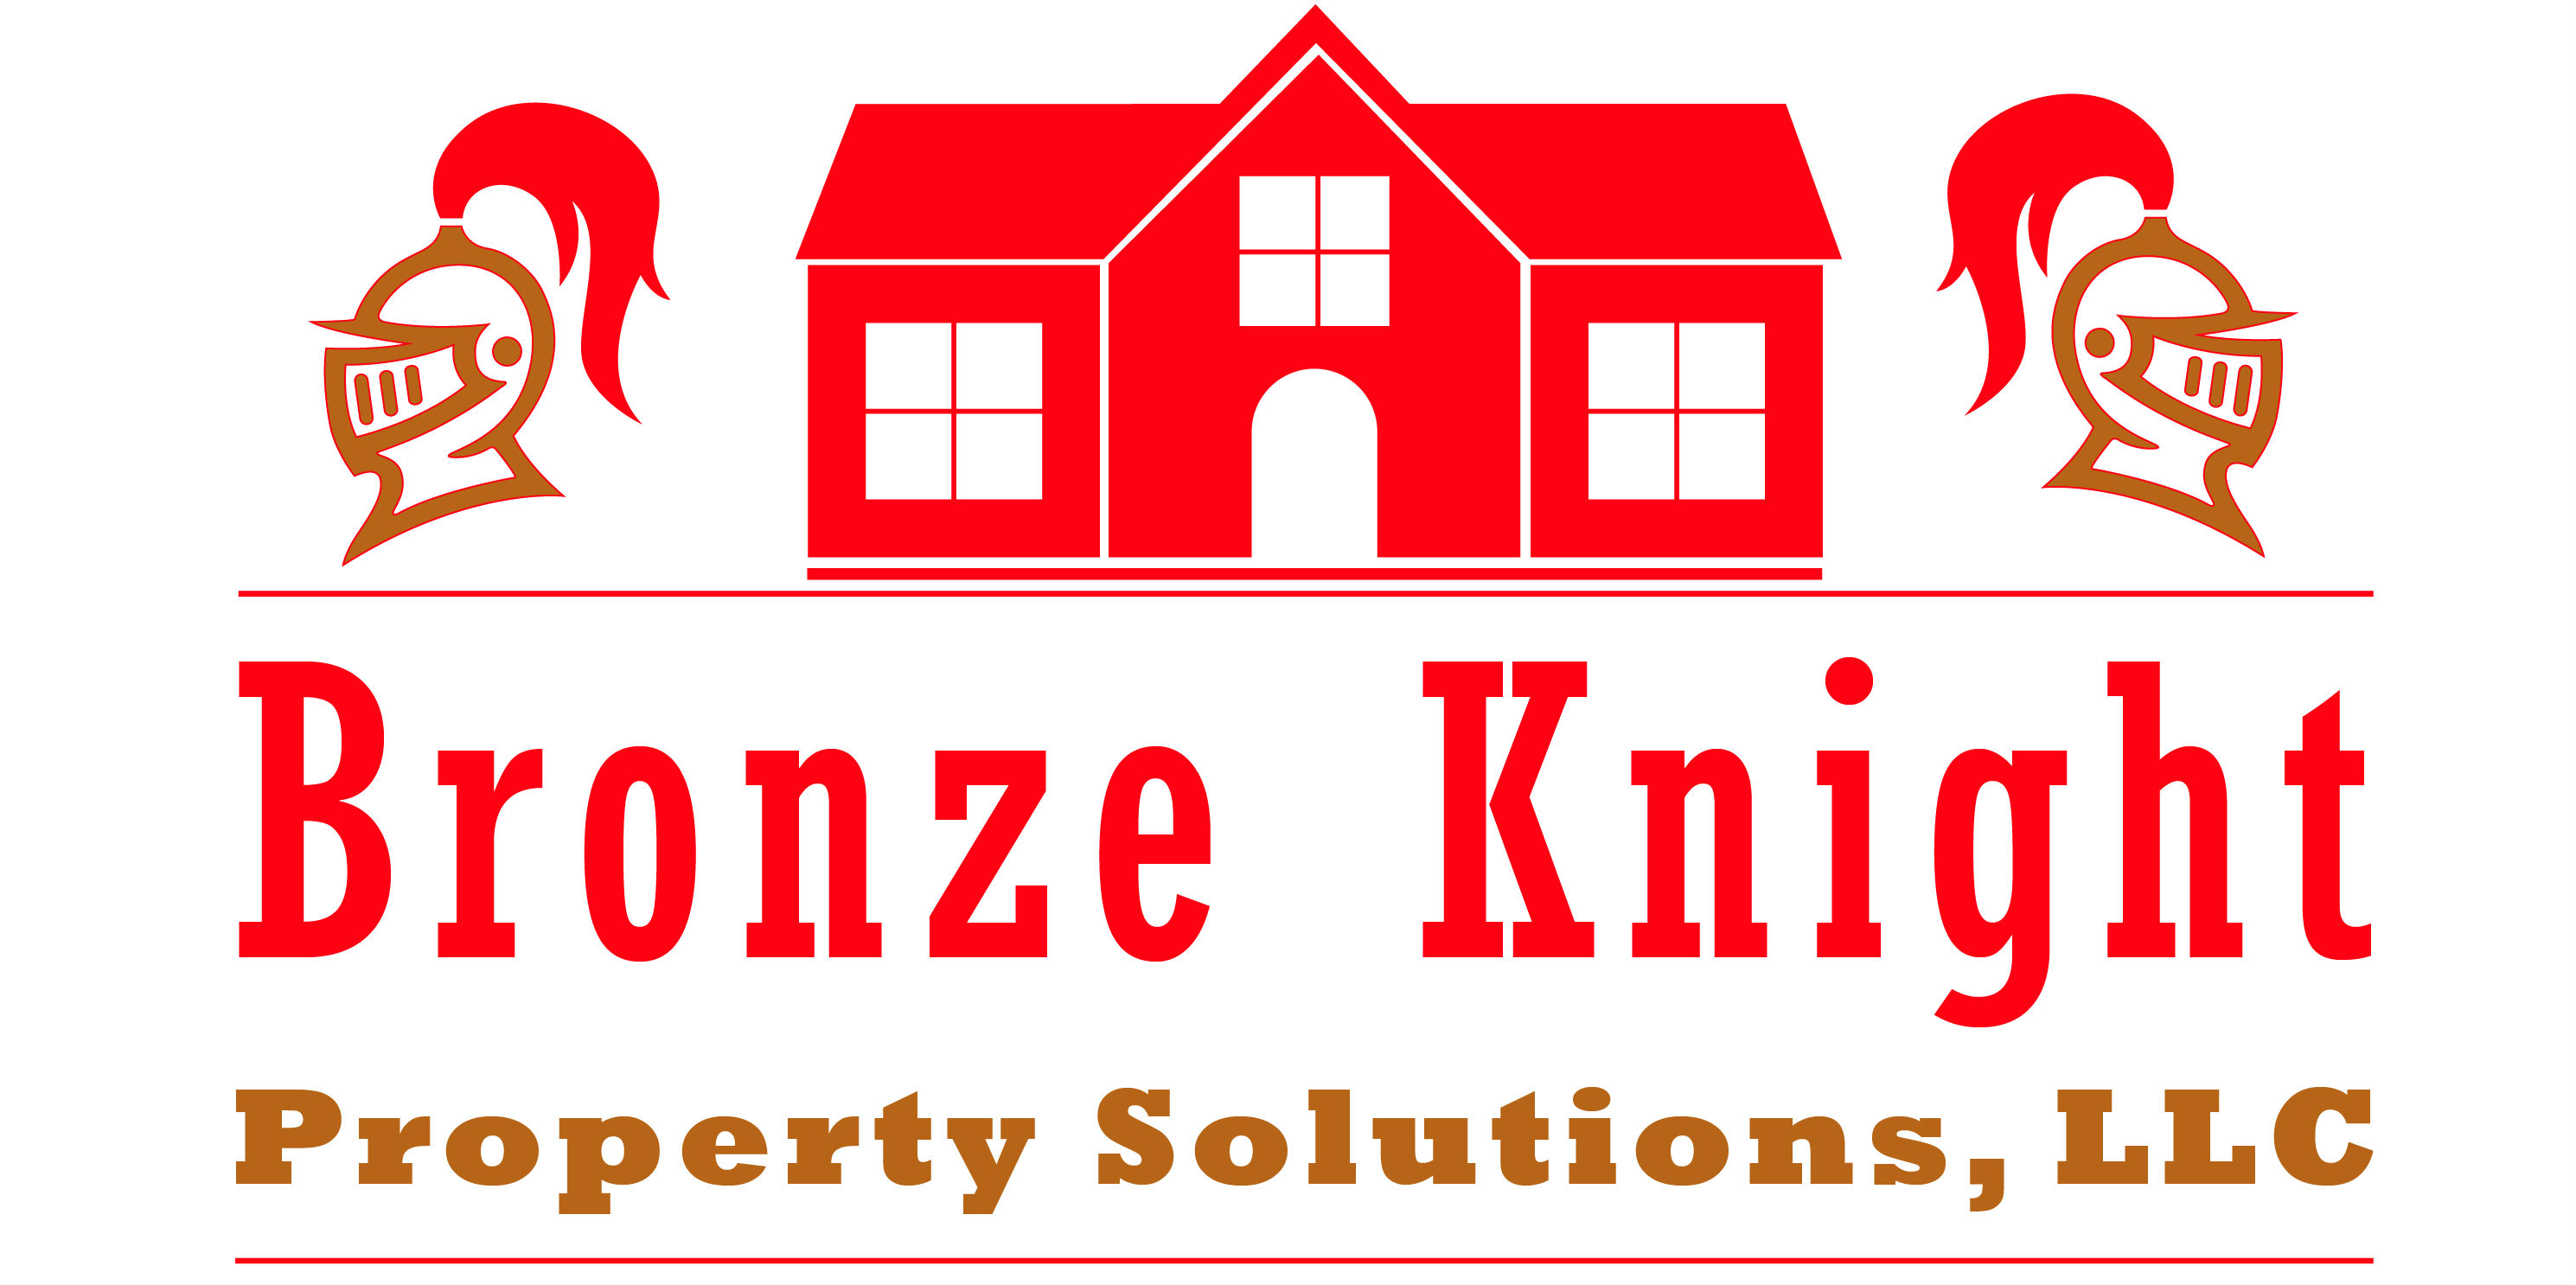 Bronze Knight Property Solutions, LLC